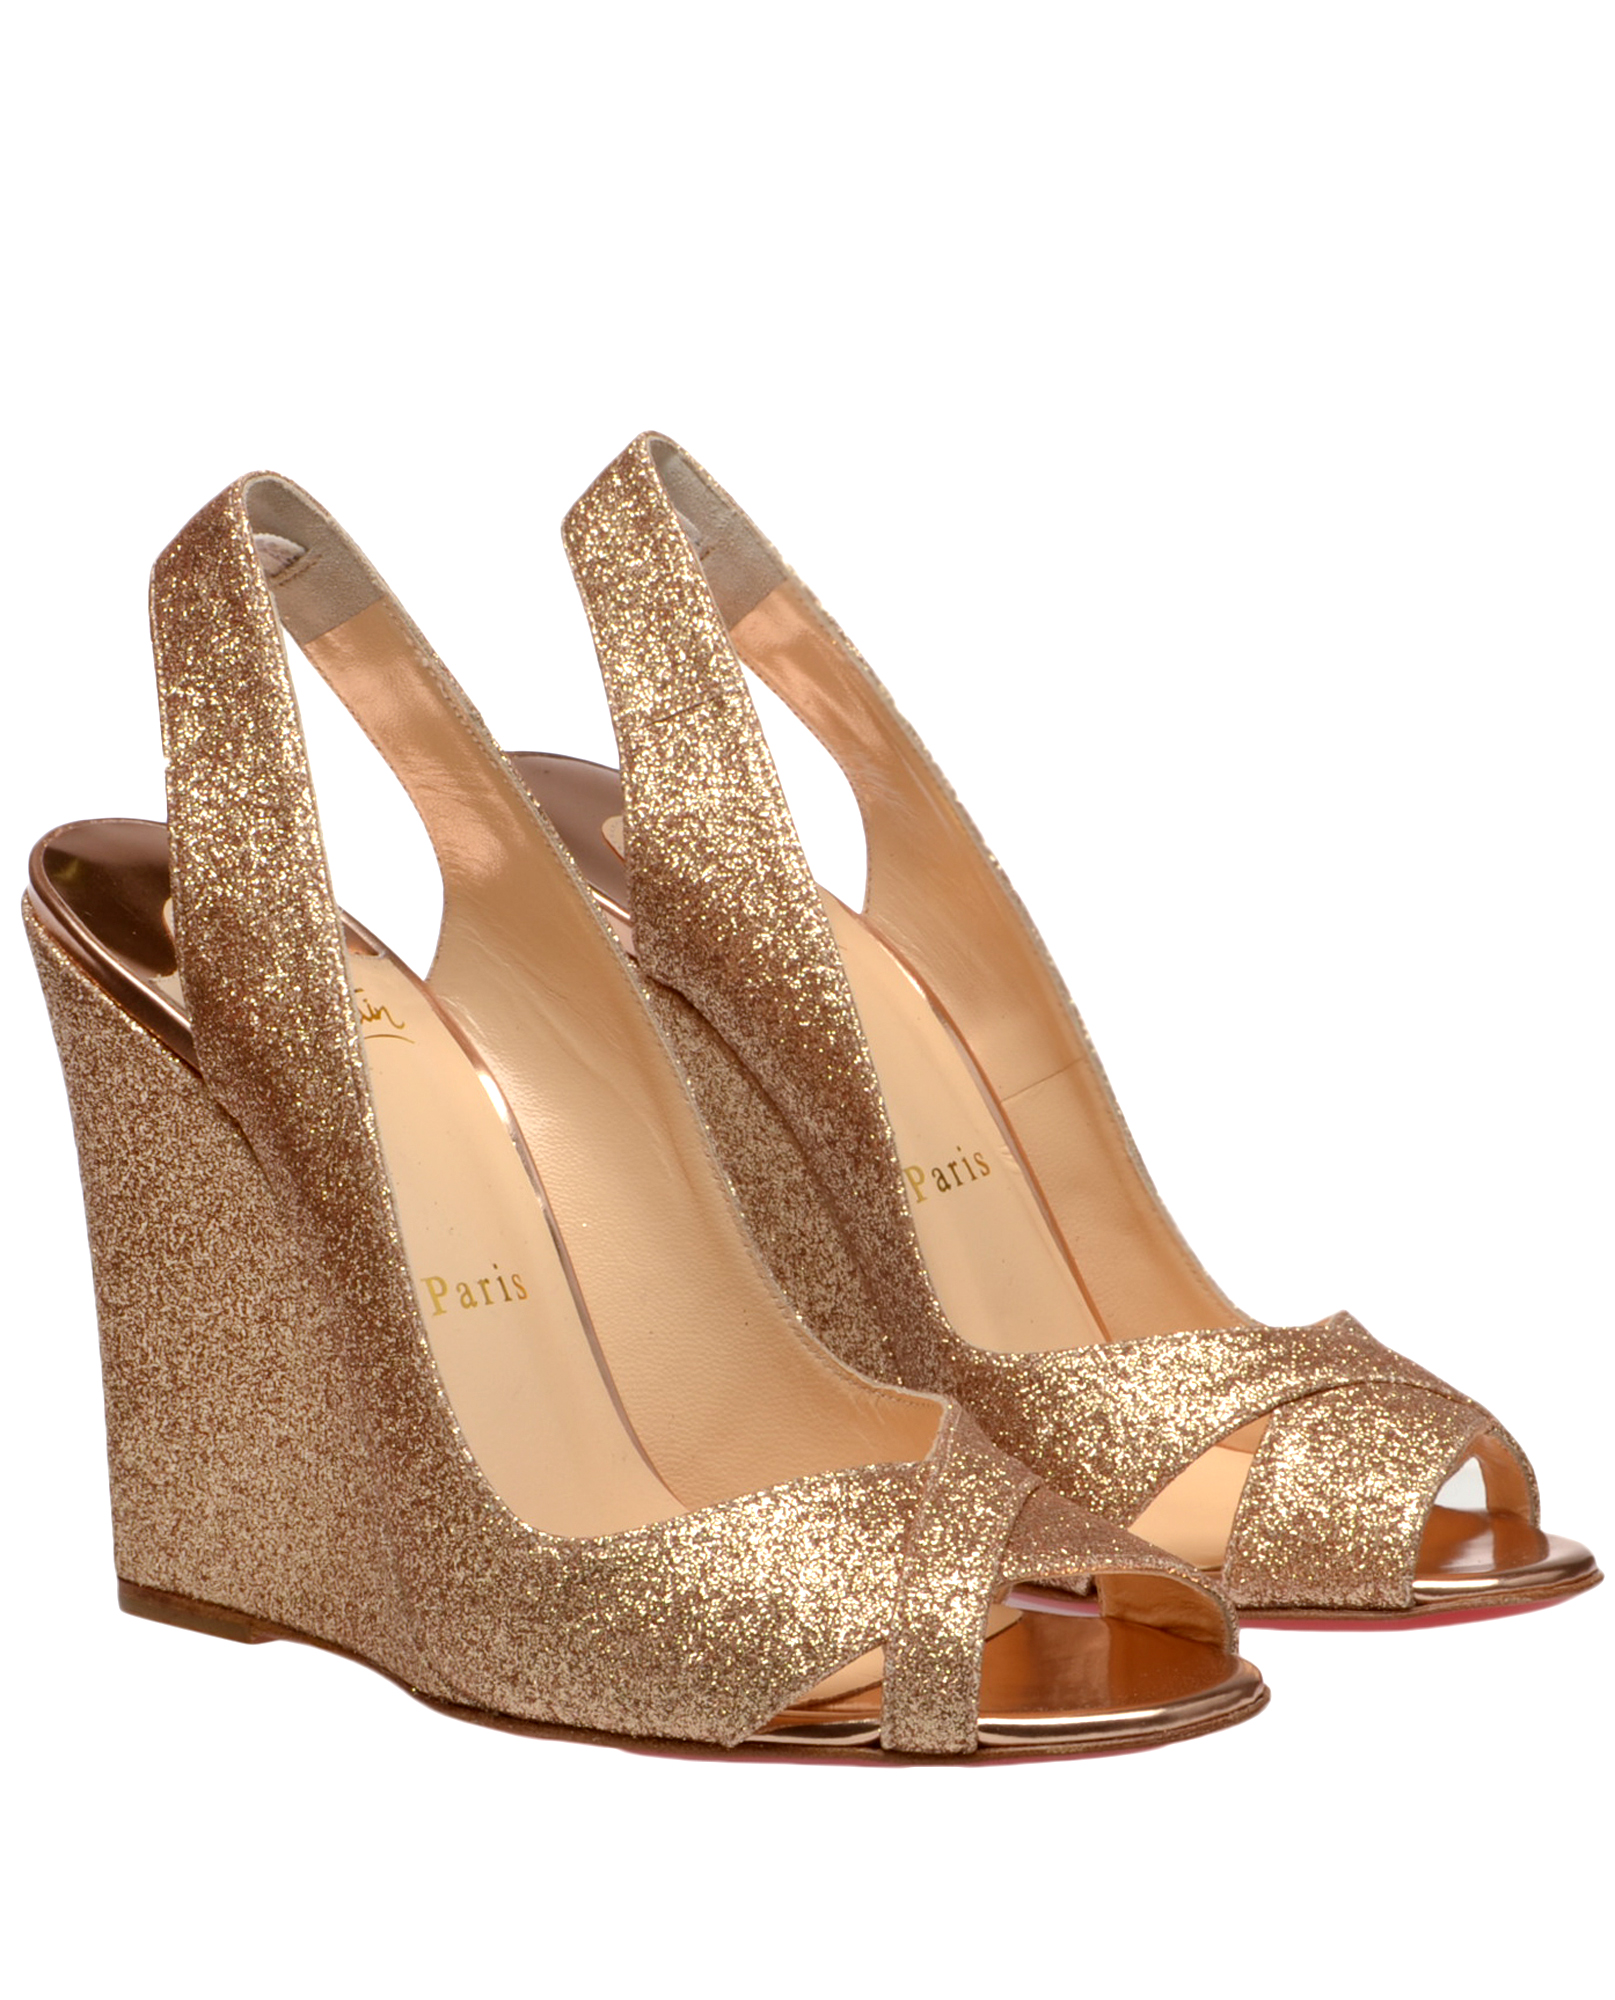 Christian Louboutin Maplesoft Bridal Shoes in Gold (white ...